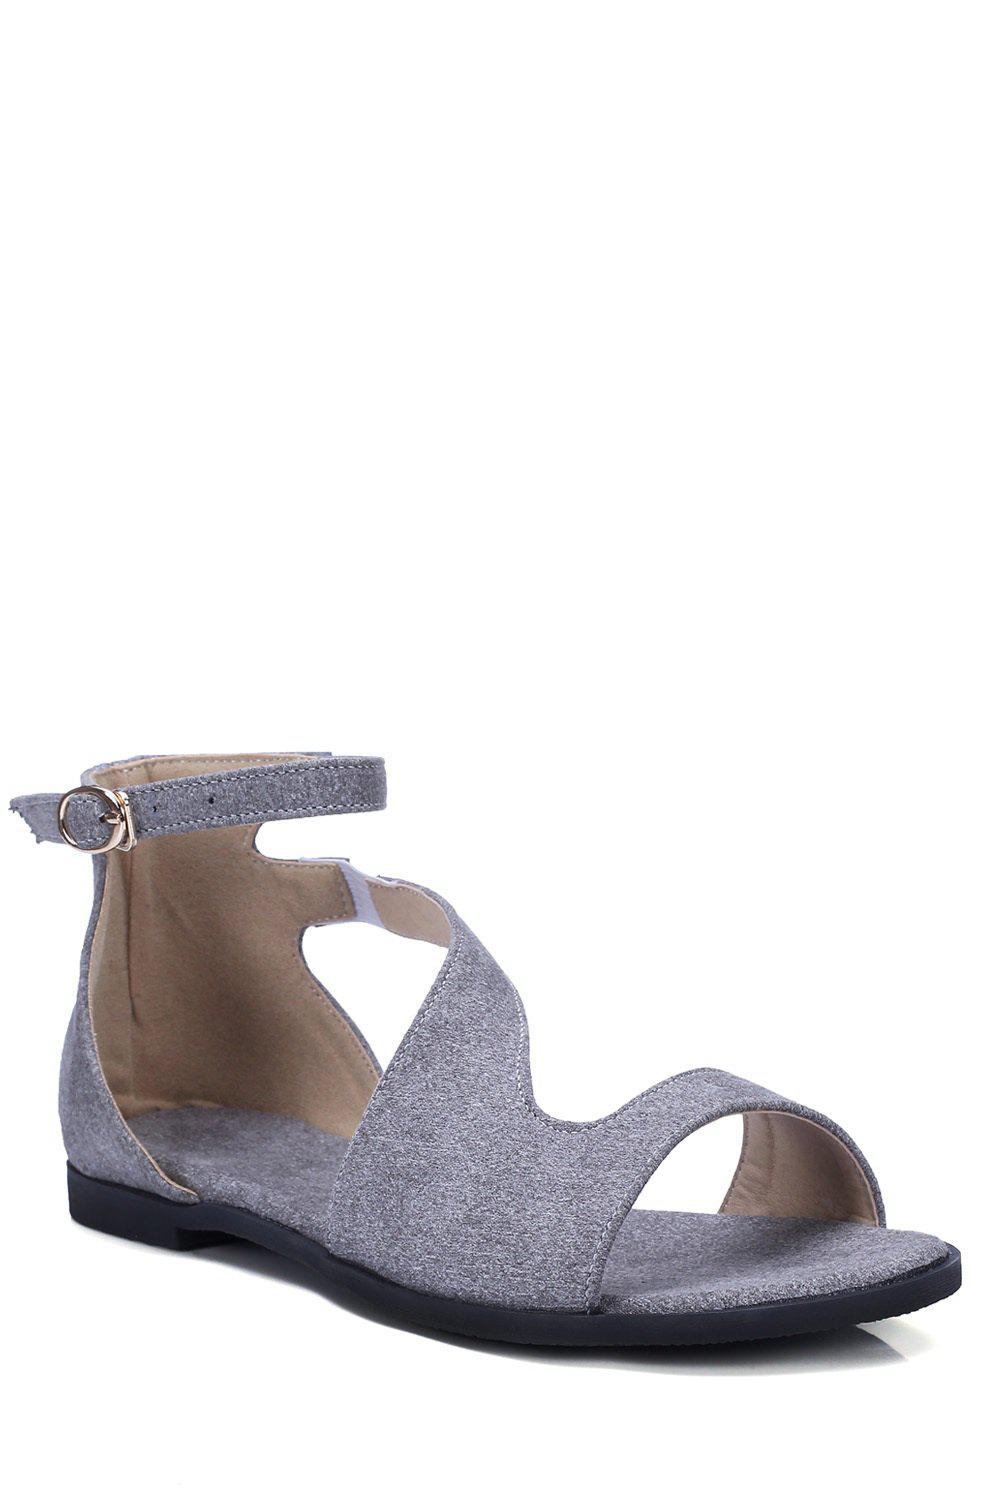 Casual Solid Color and Flat Heel Design Sandals For Women